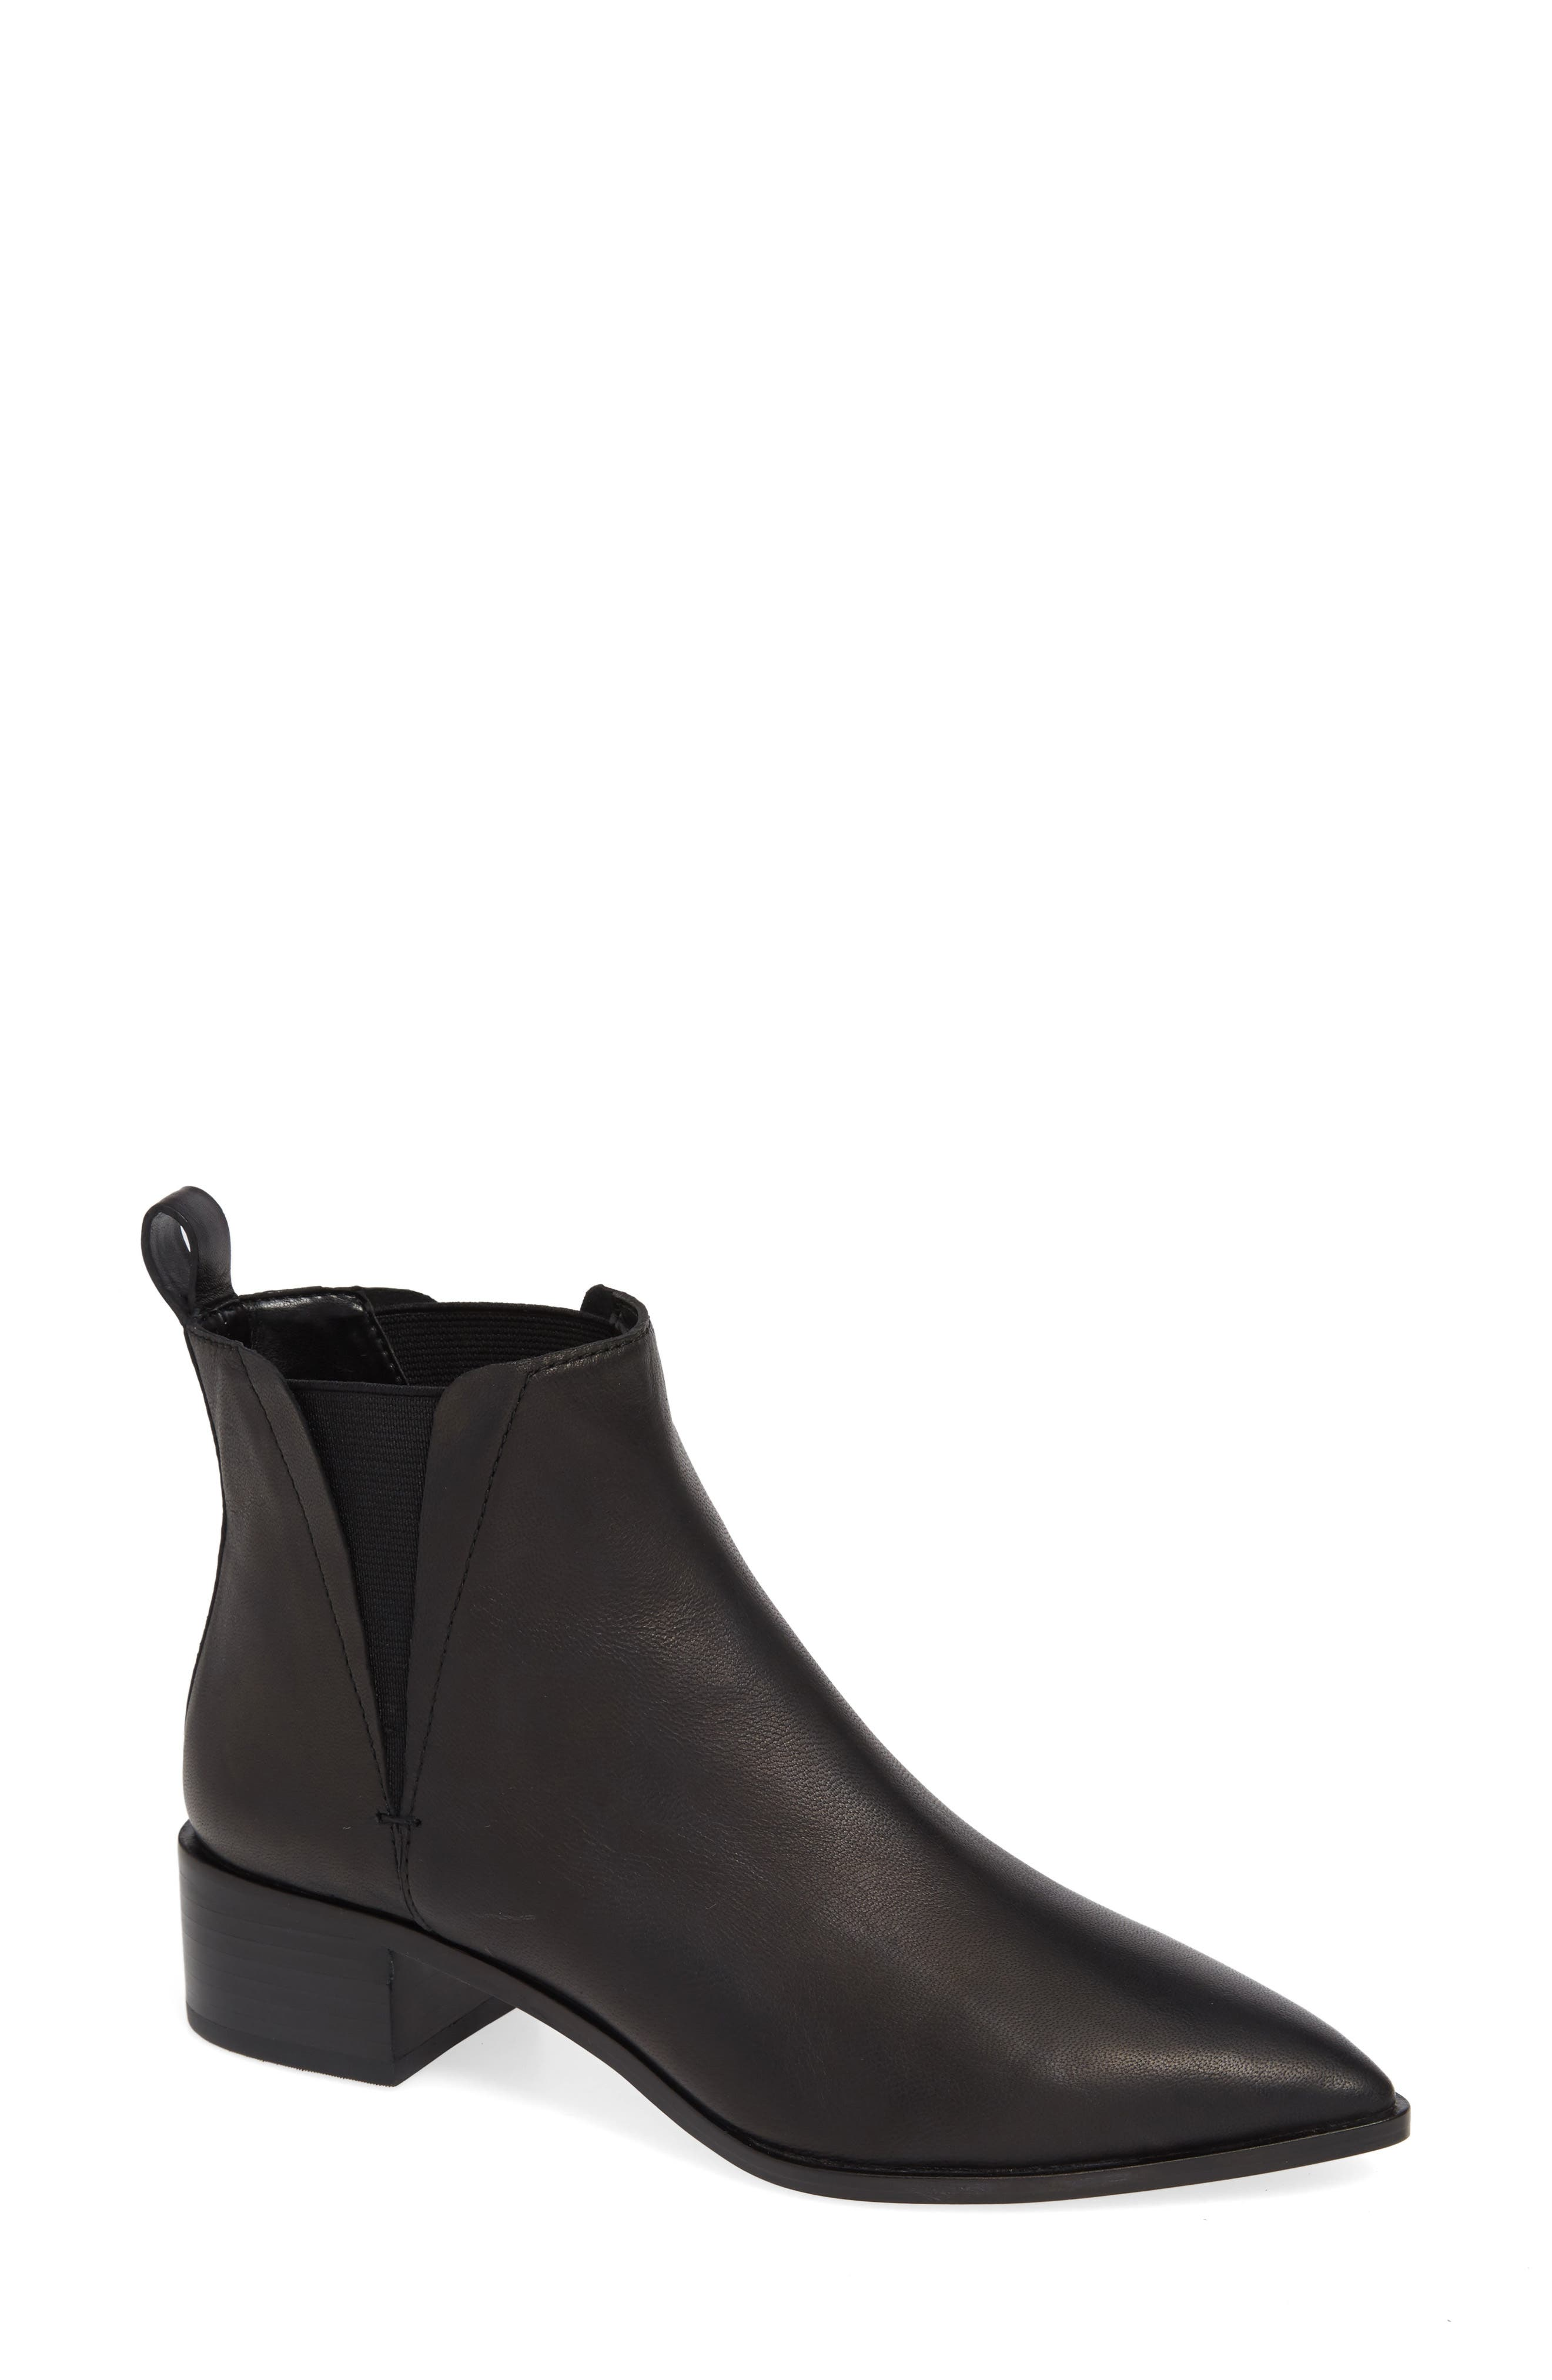 Taylor Bootie,                             Main thumbnail 1, color,                             BLACK LEATHER